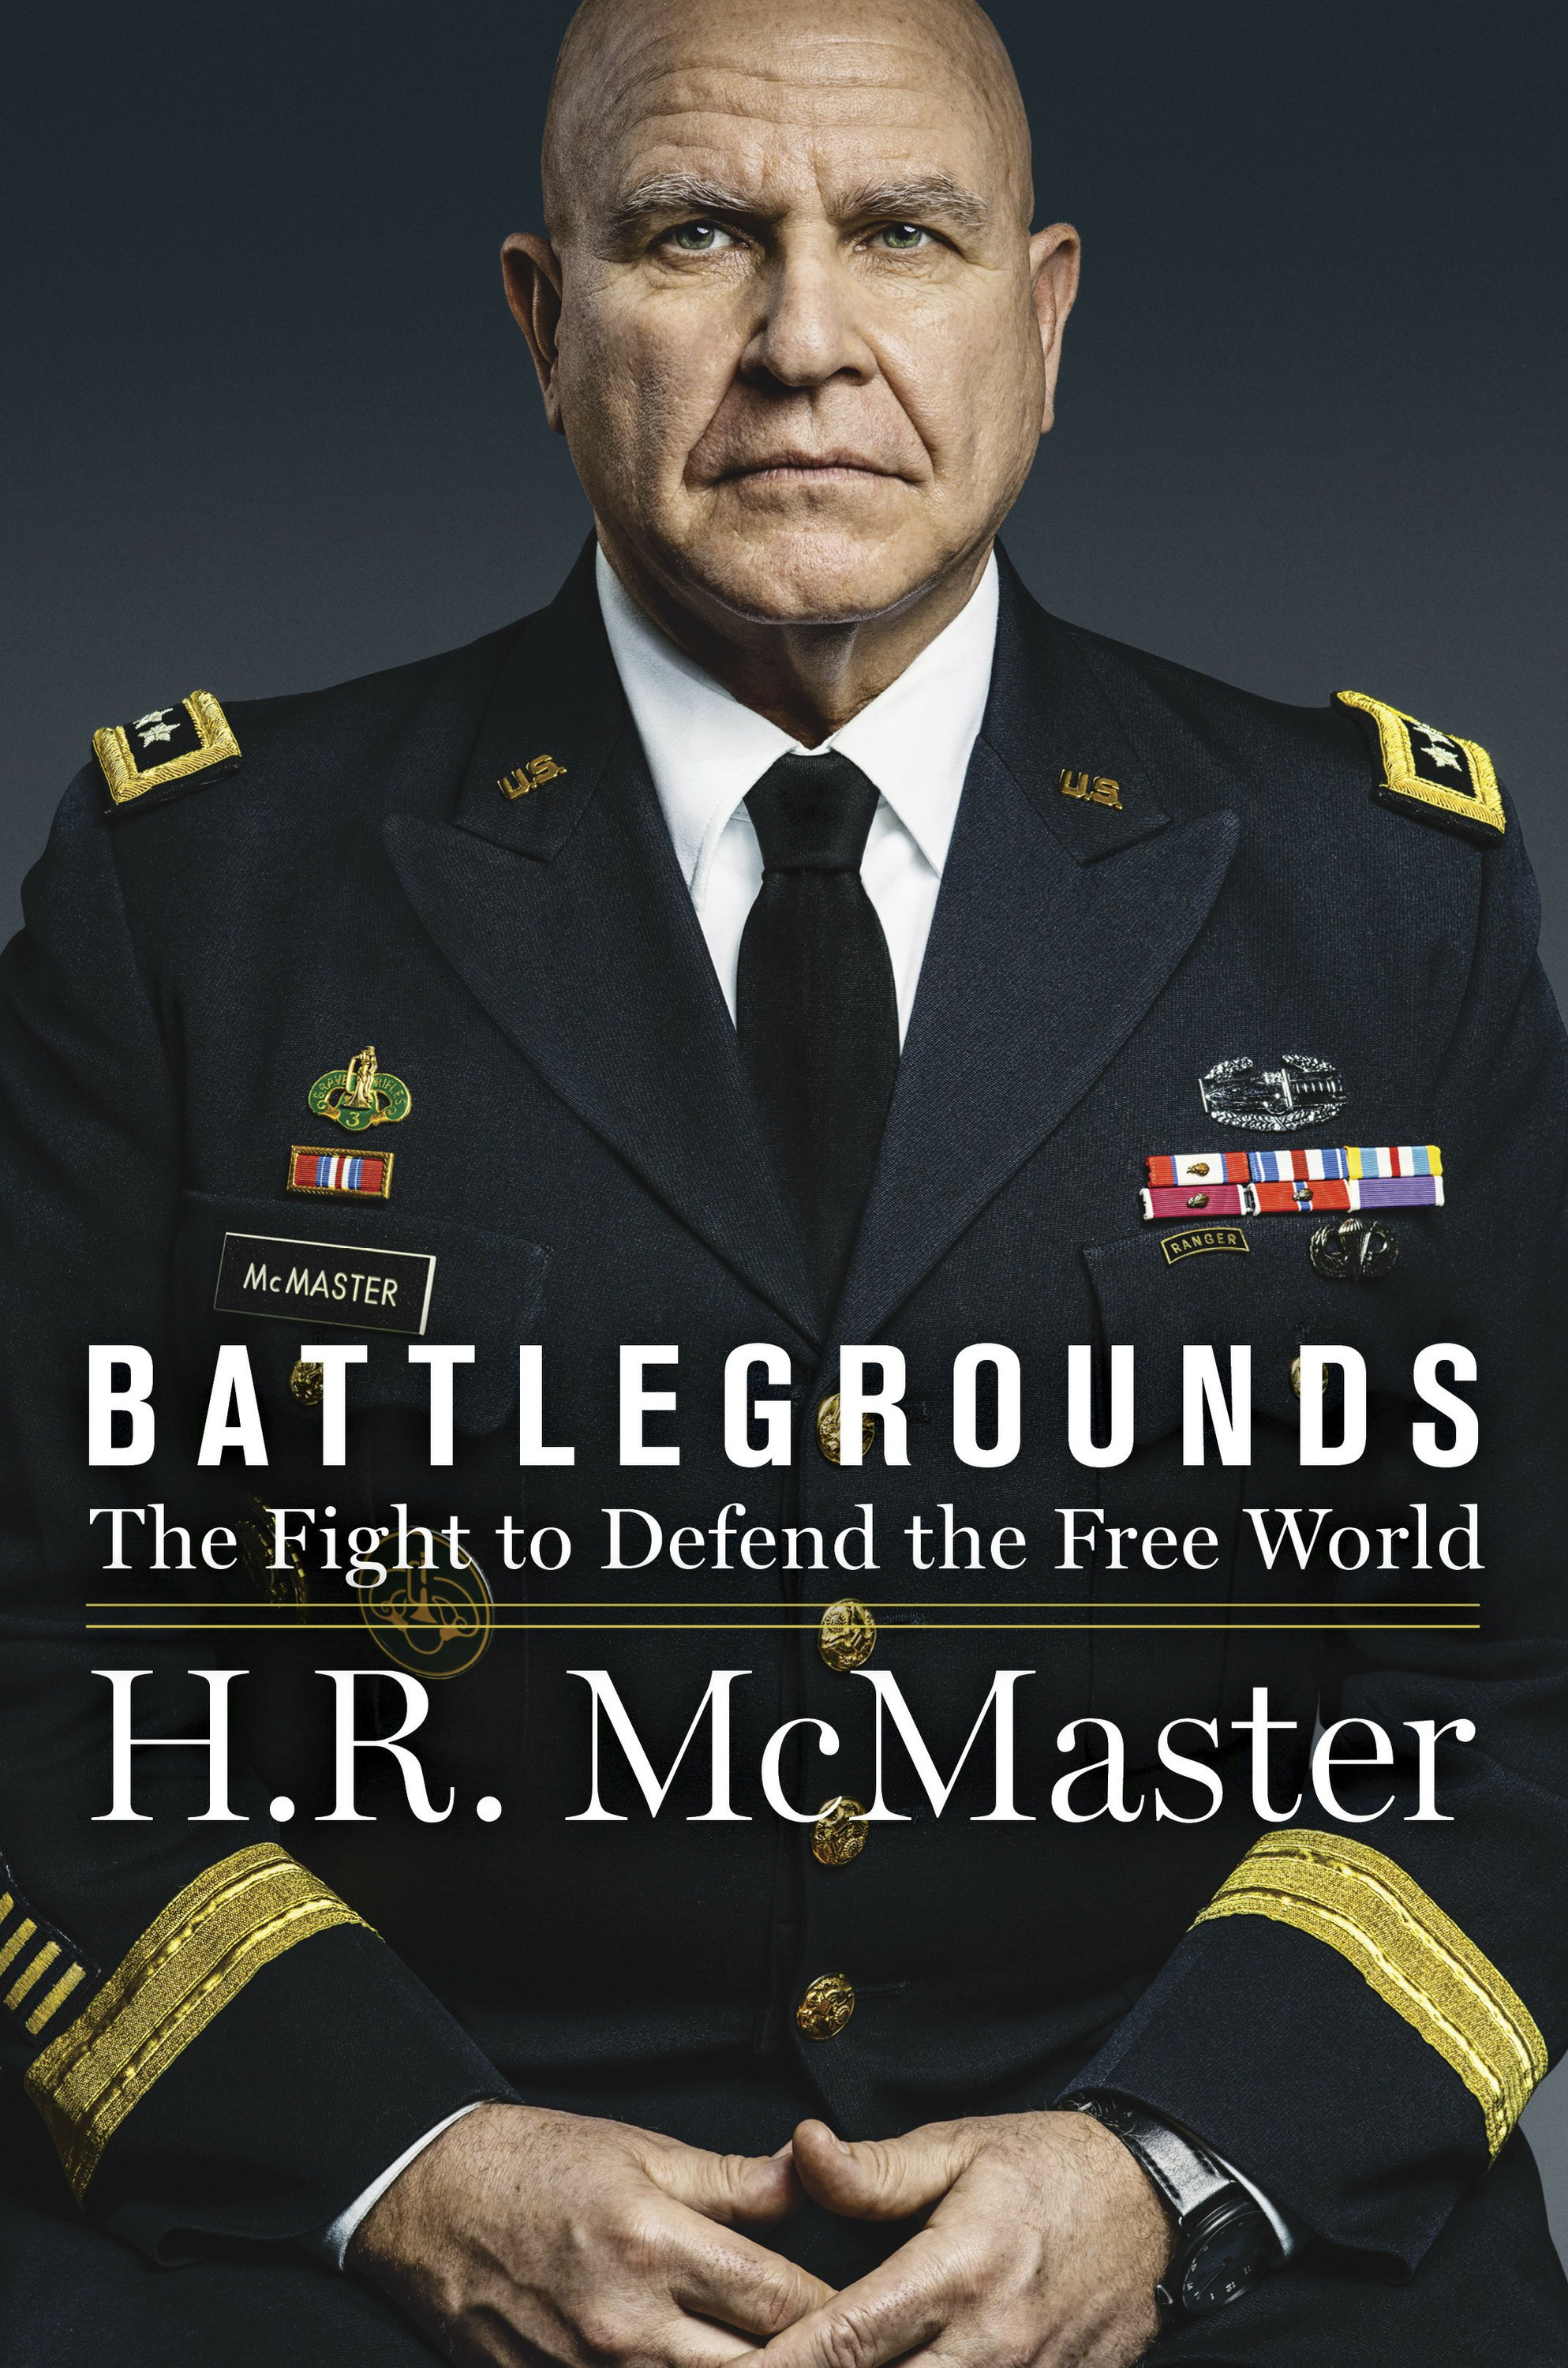 H.R. McMaster book `Battlegrounds' coming out in April